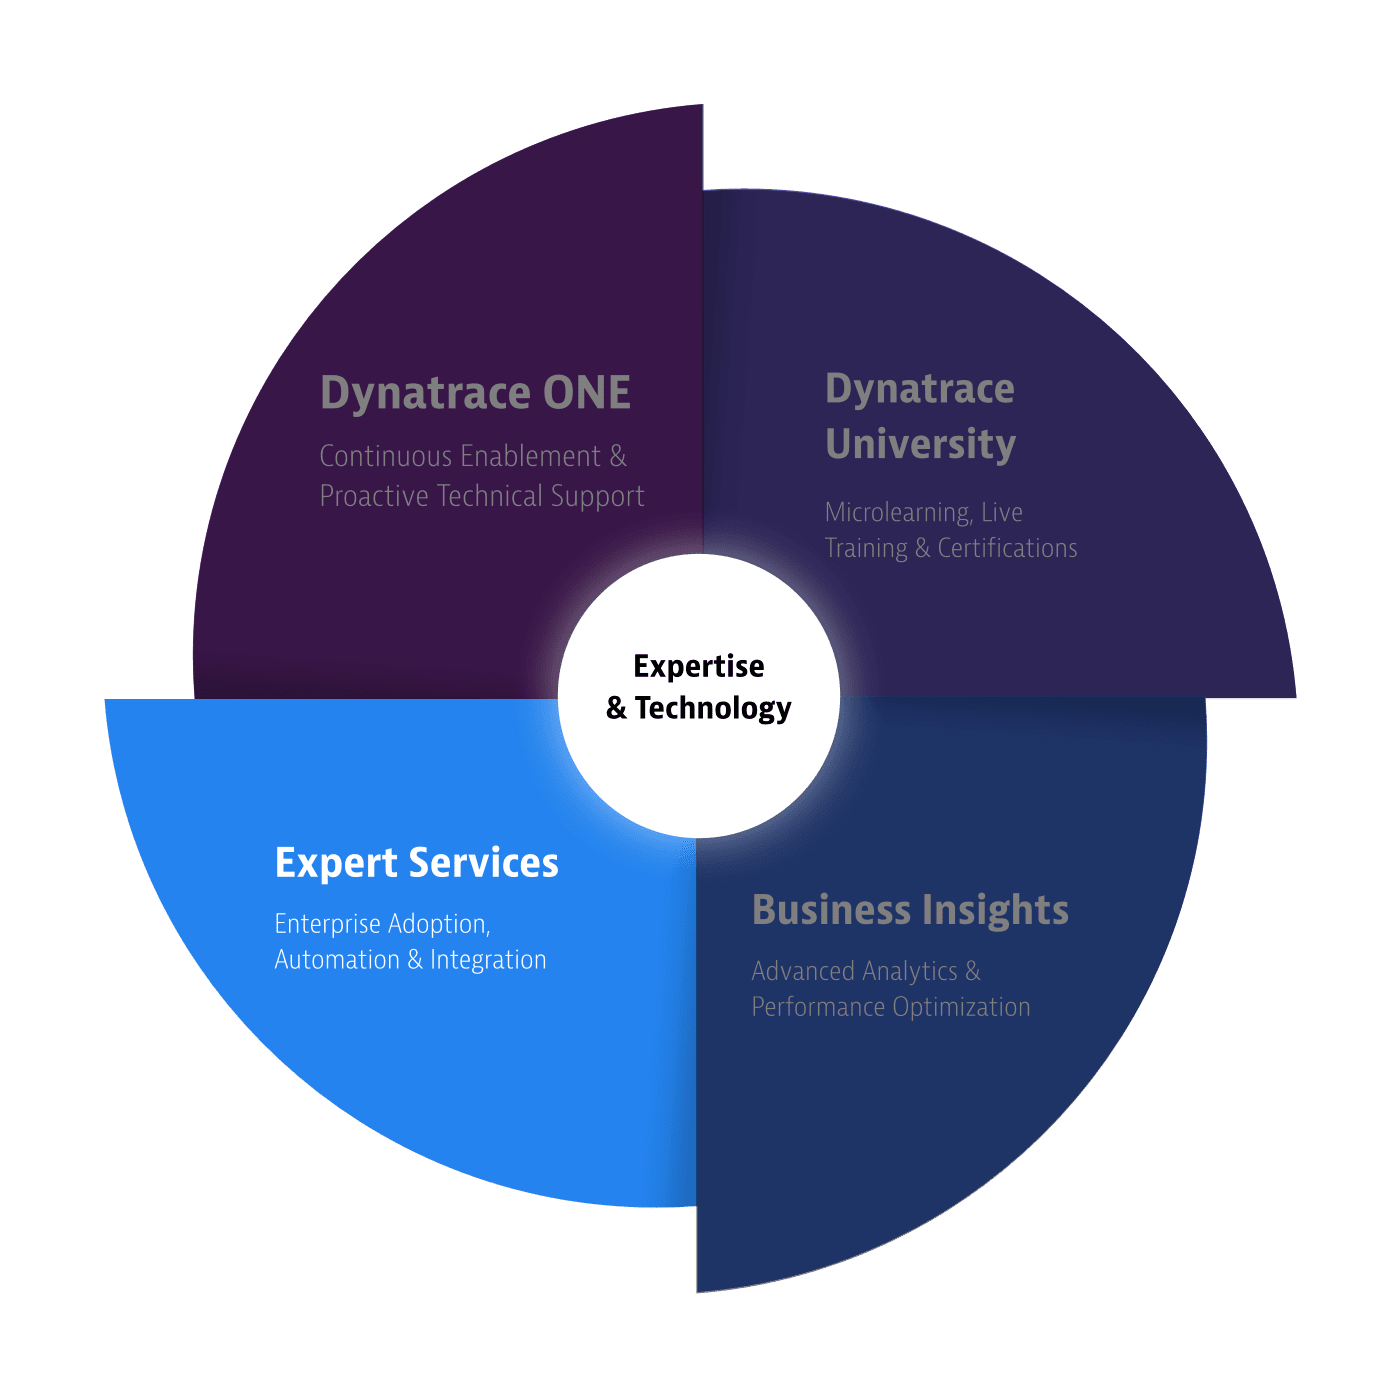 Dynatrace servicesSupportWheel experts services